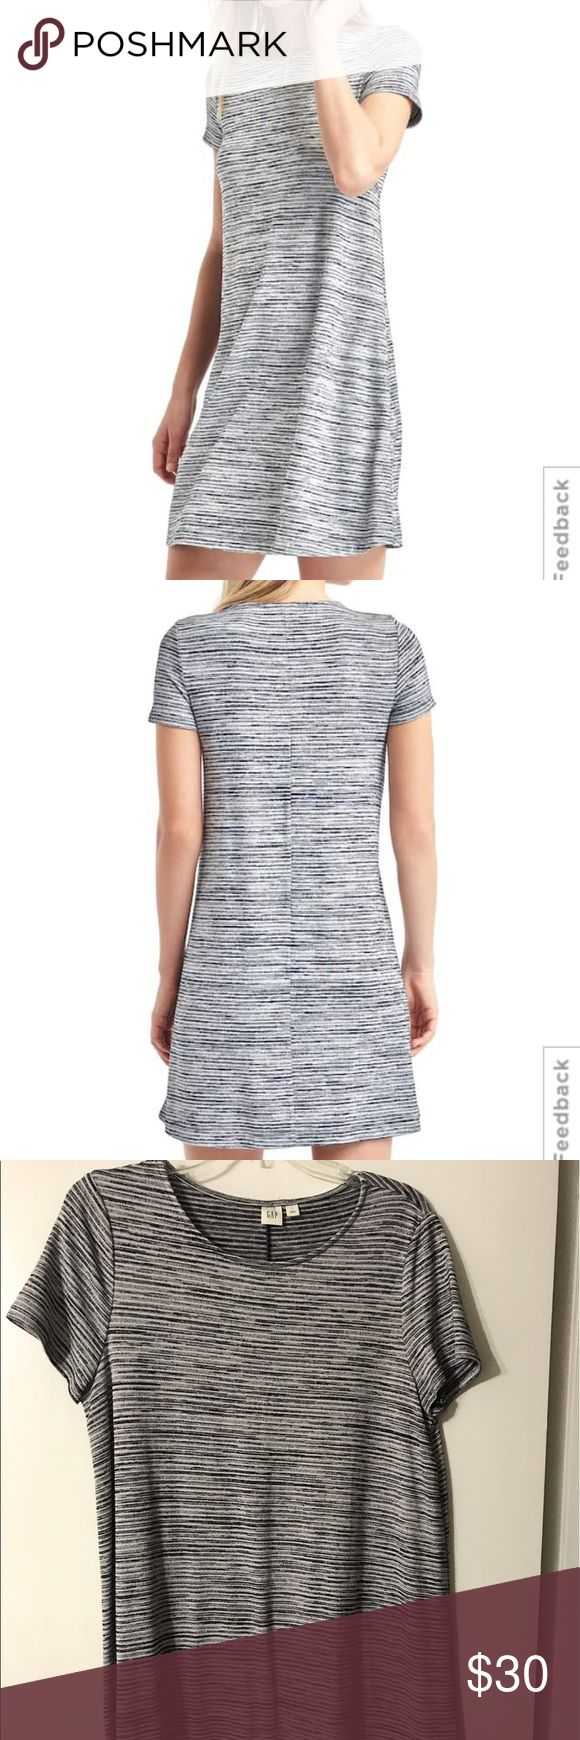 GAP T-shirt Dress This t-shirt dress is SUPER soft and comfy! It has been worn ONCE! With the colors being black and white, it's super neutral! GAP Dresses